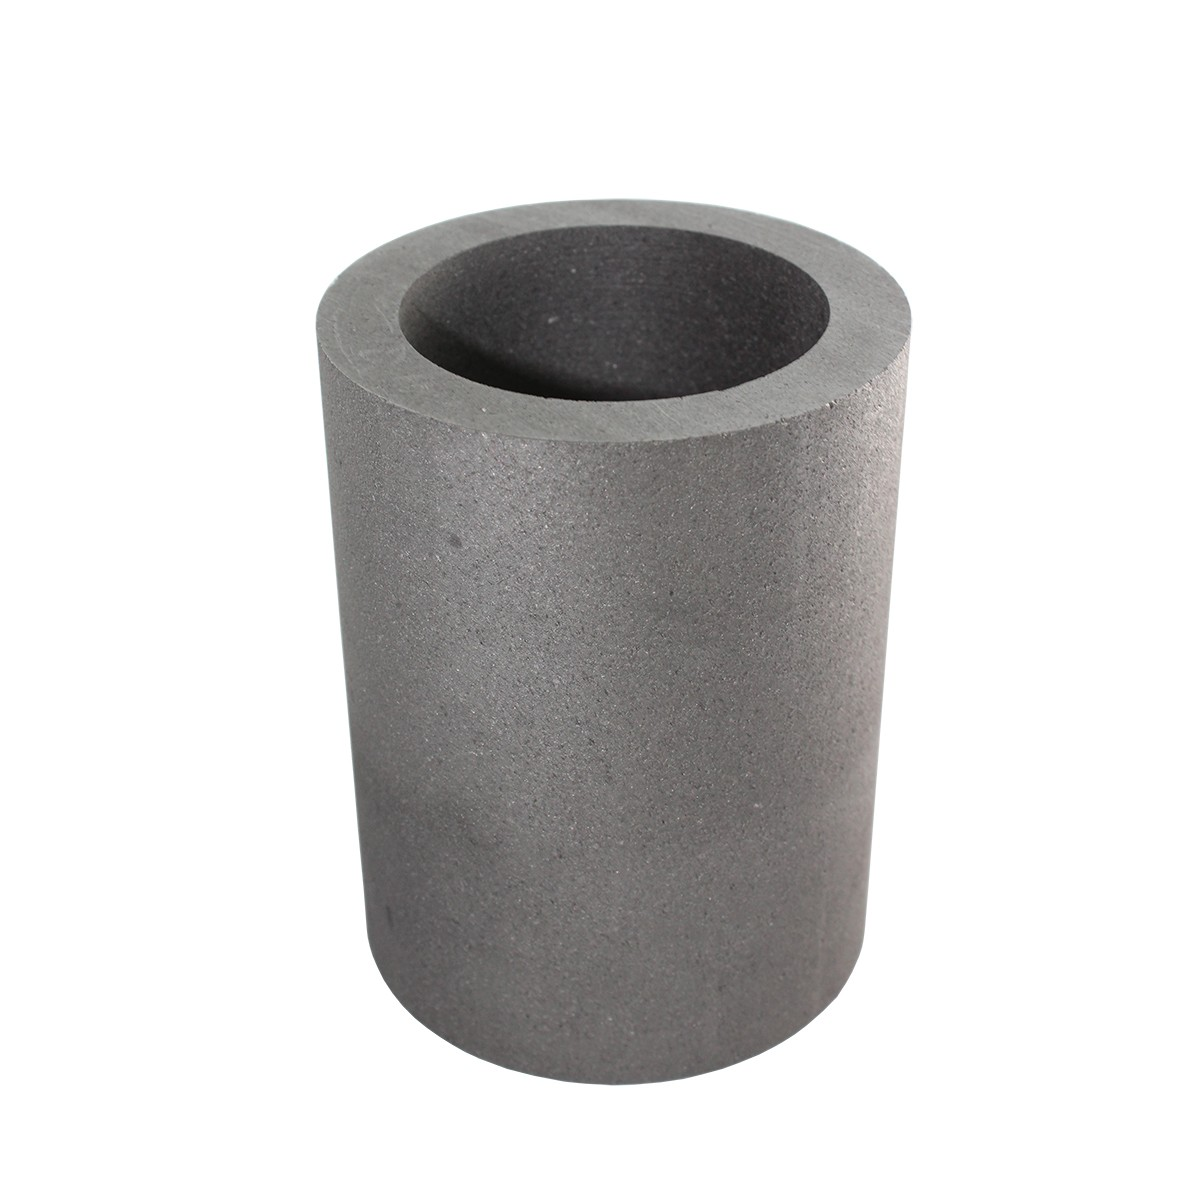 "Memco Type Inductovac Graphite Crucible - 0.31"" Hole"